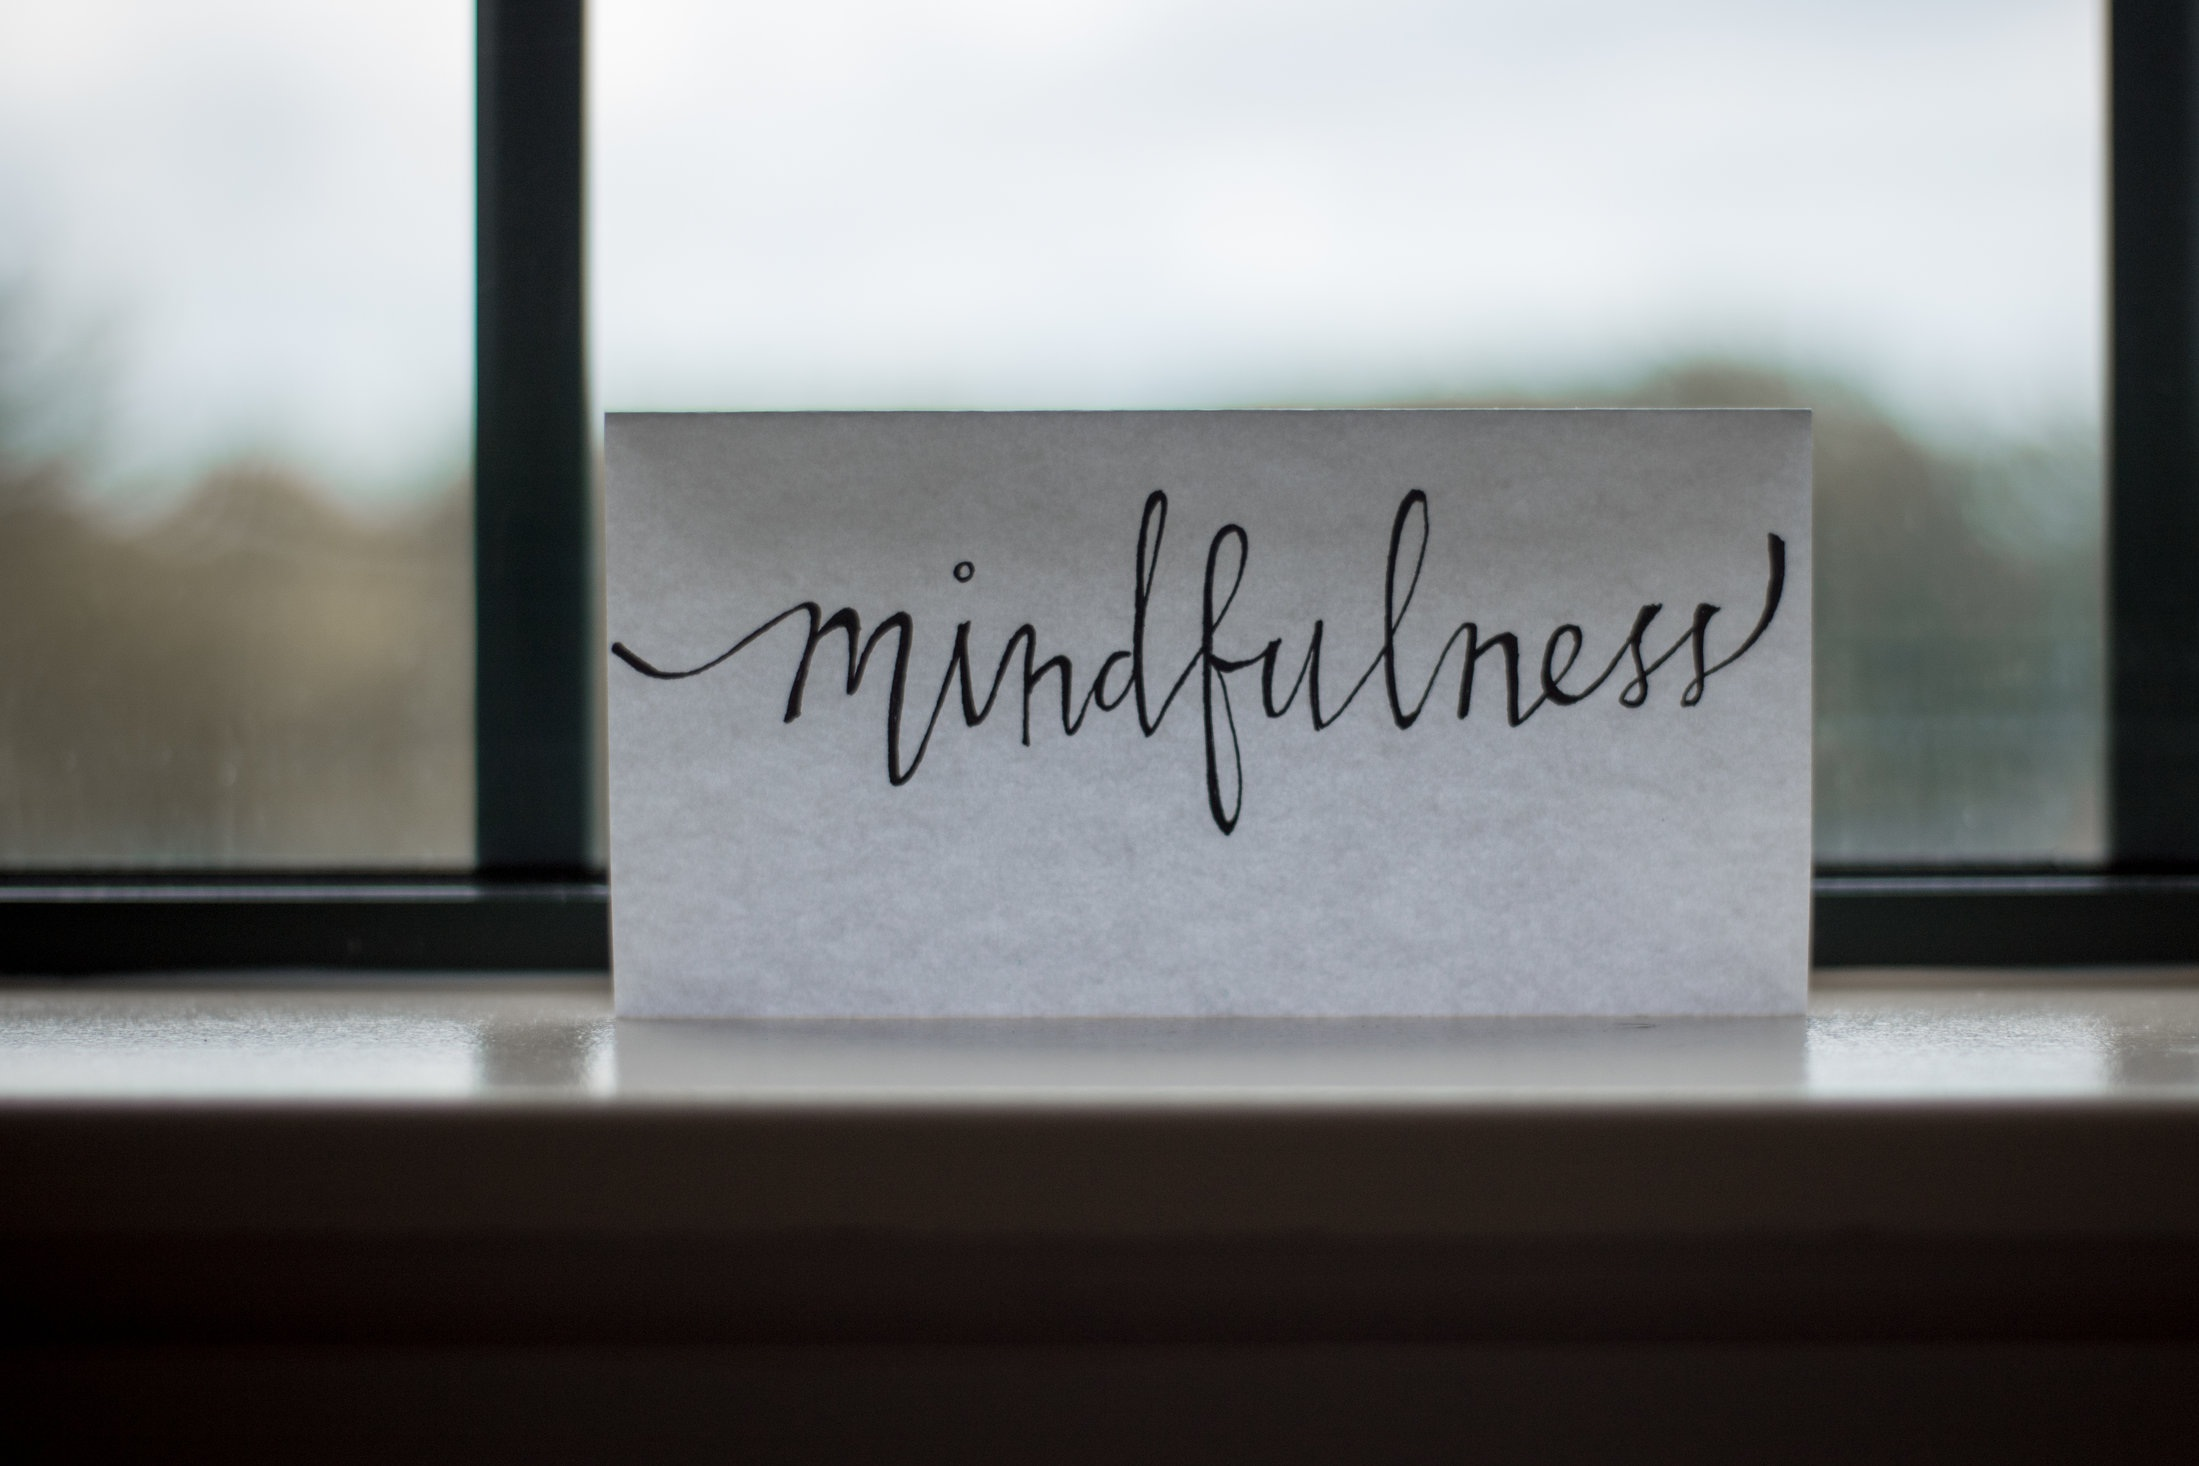 Body-Based Mindfulness for incarcerated women - Weekly ongoing class combining principles of trauma-informed yoga, mindfulness-based stress reduction, and the Path of Freedom® emotional intelligence for incarcerated individuals program. Movement, breathing, and self-regulation are interwoven throughout each class.